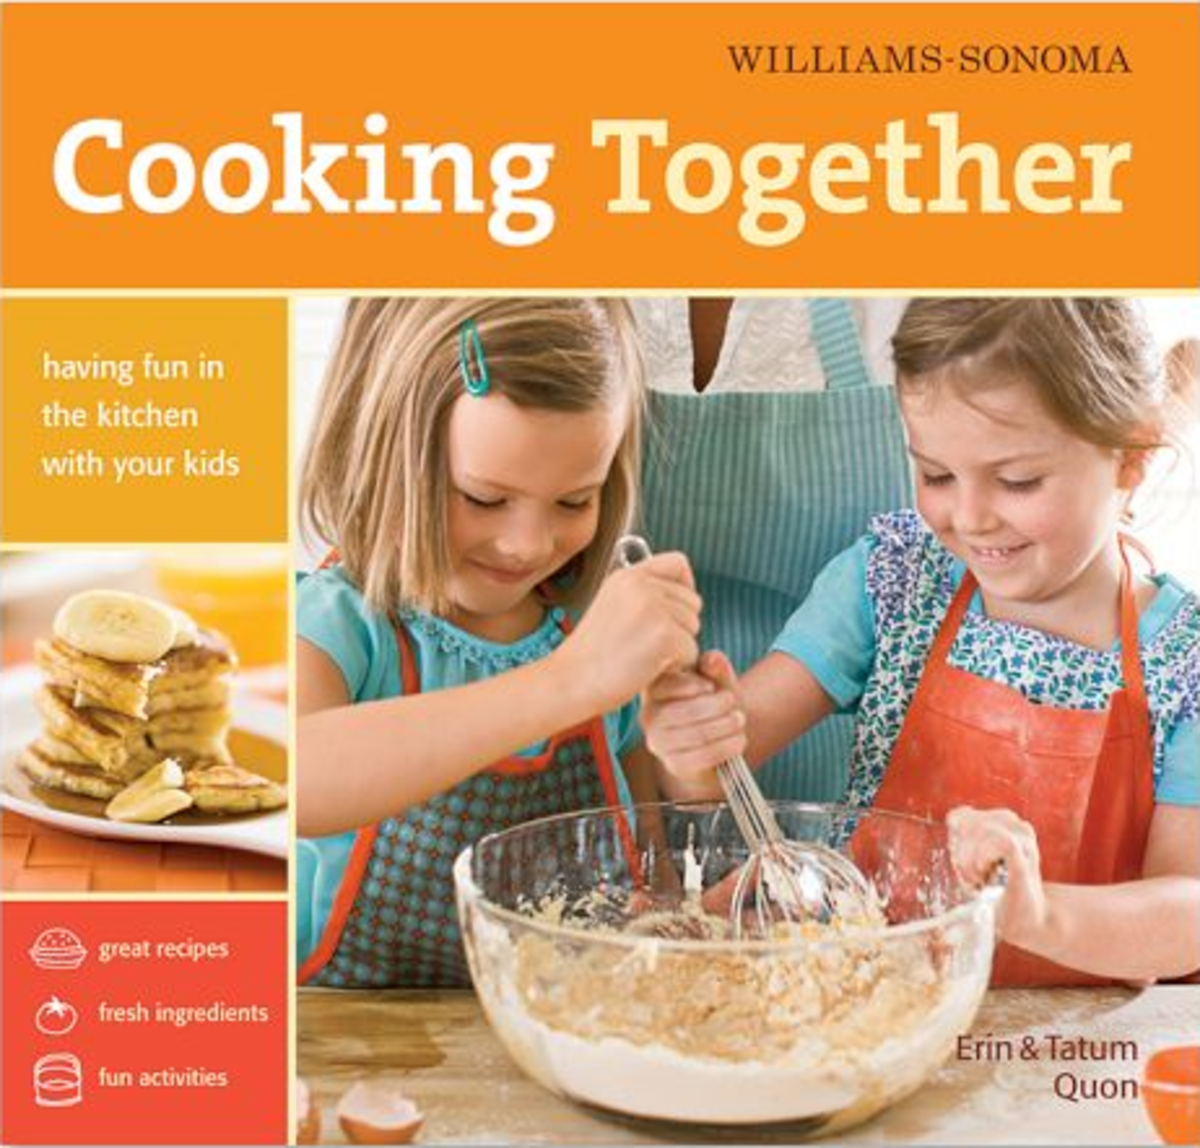 Williams and Sonoma Cooking Together Cookbook - Cookbook for Kids